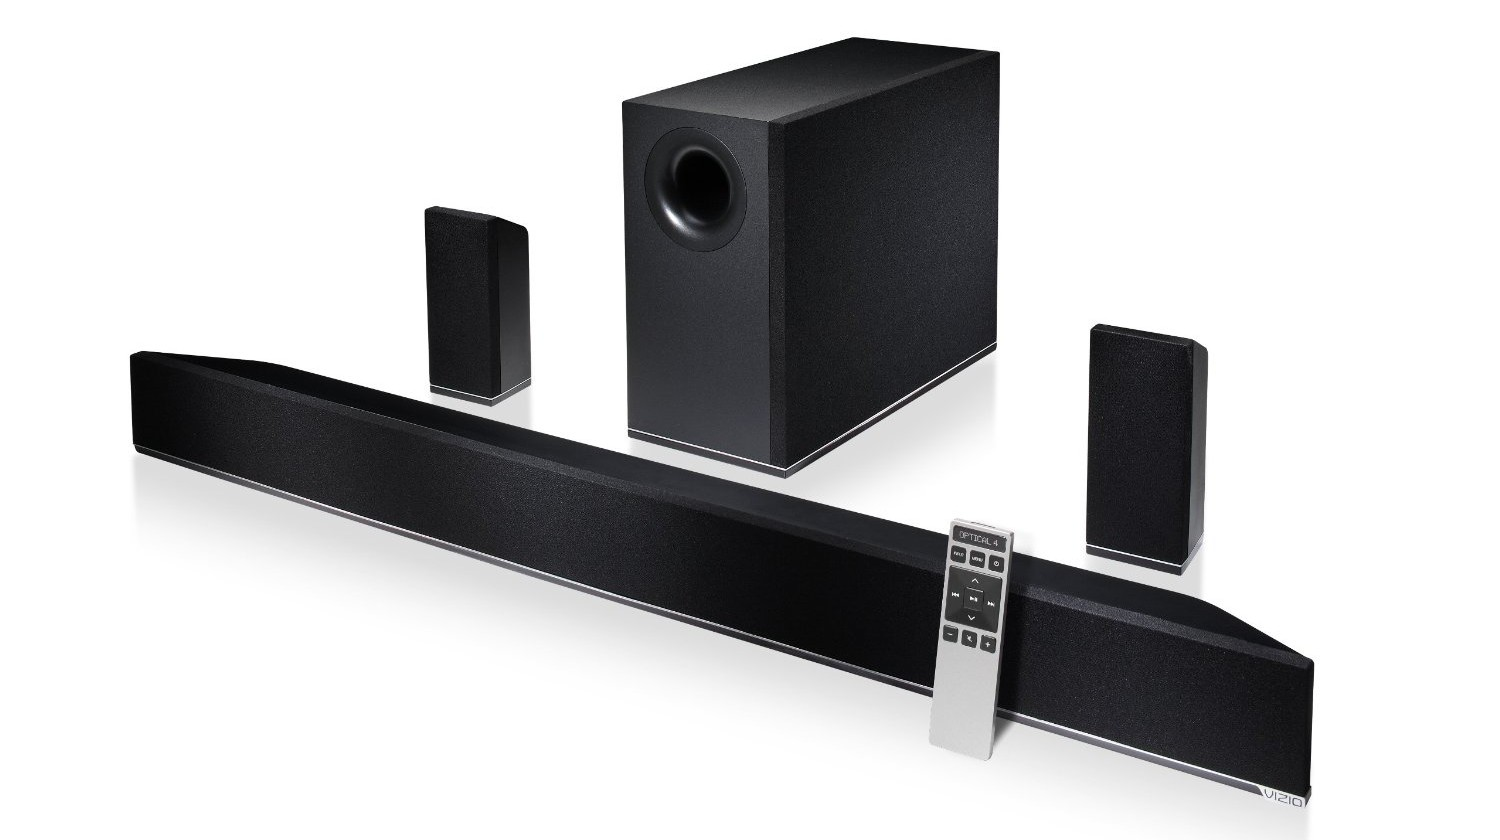 Vizio S4221w C4 42 Inch Sound Bar Review